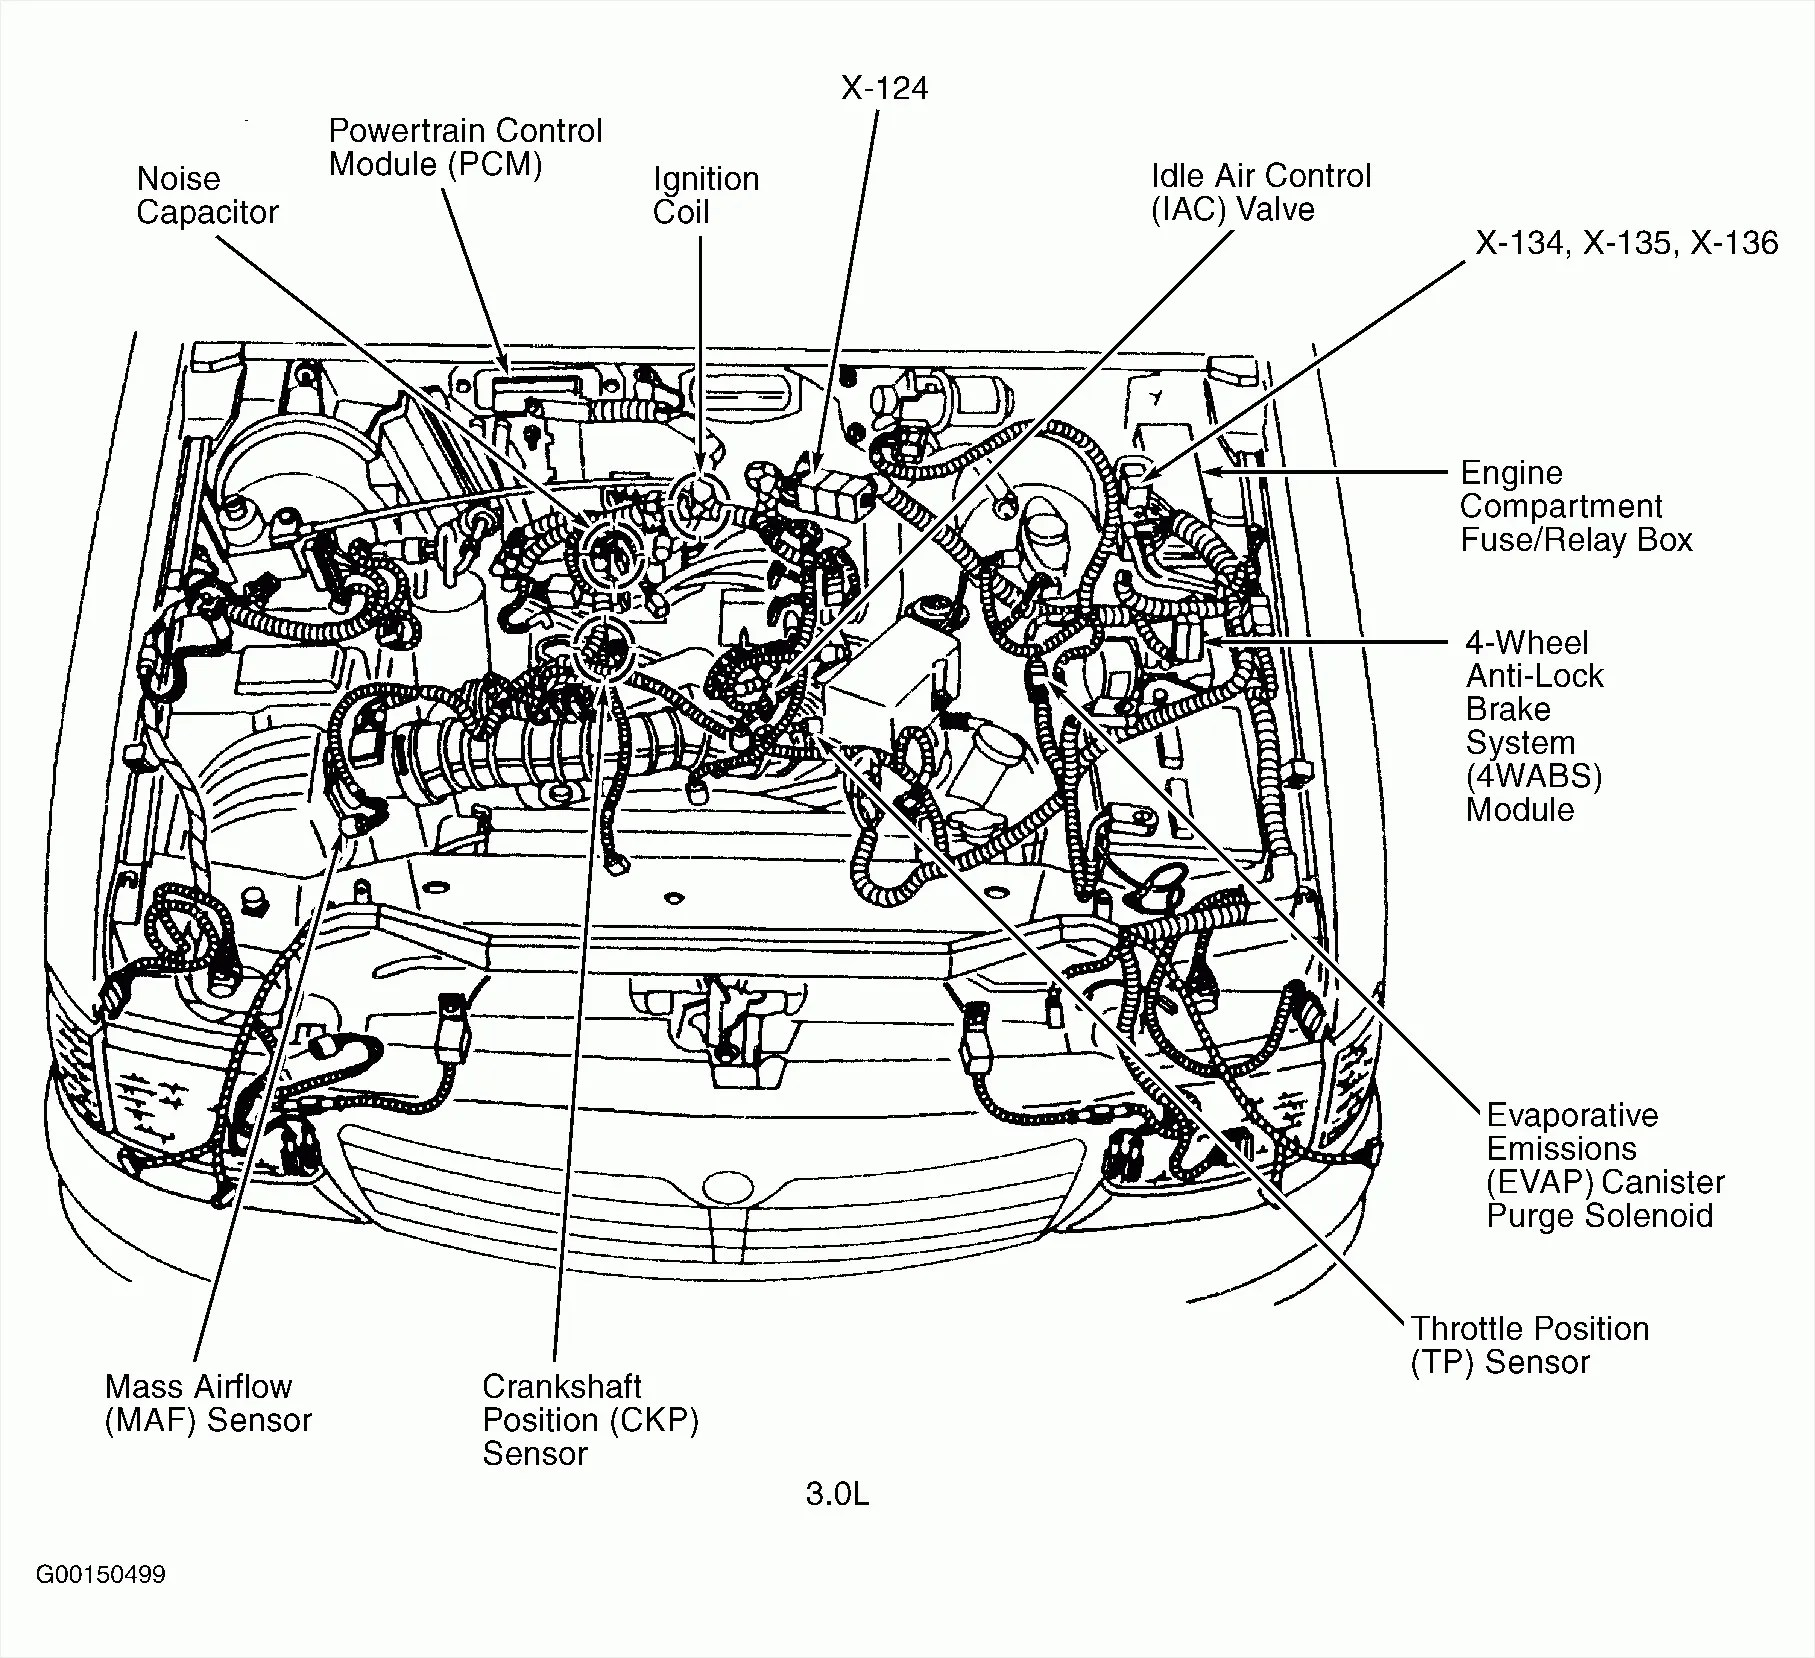 hight resolution of 99 escalade engine hose diagram wiring diagram expert crown victoria engine on 2004 cadillac escalade transmission